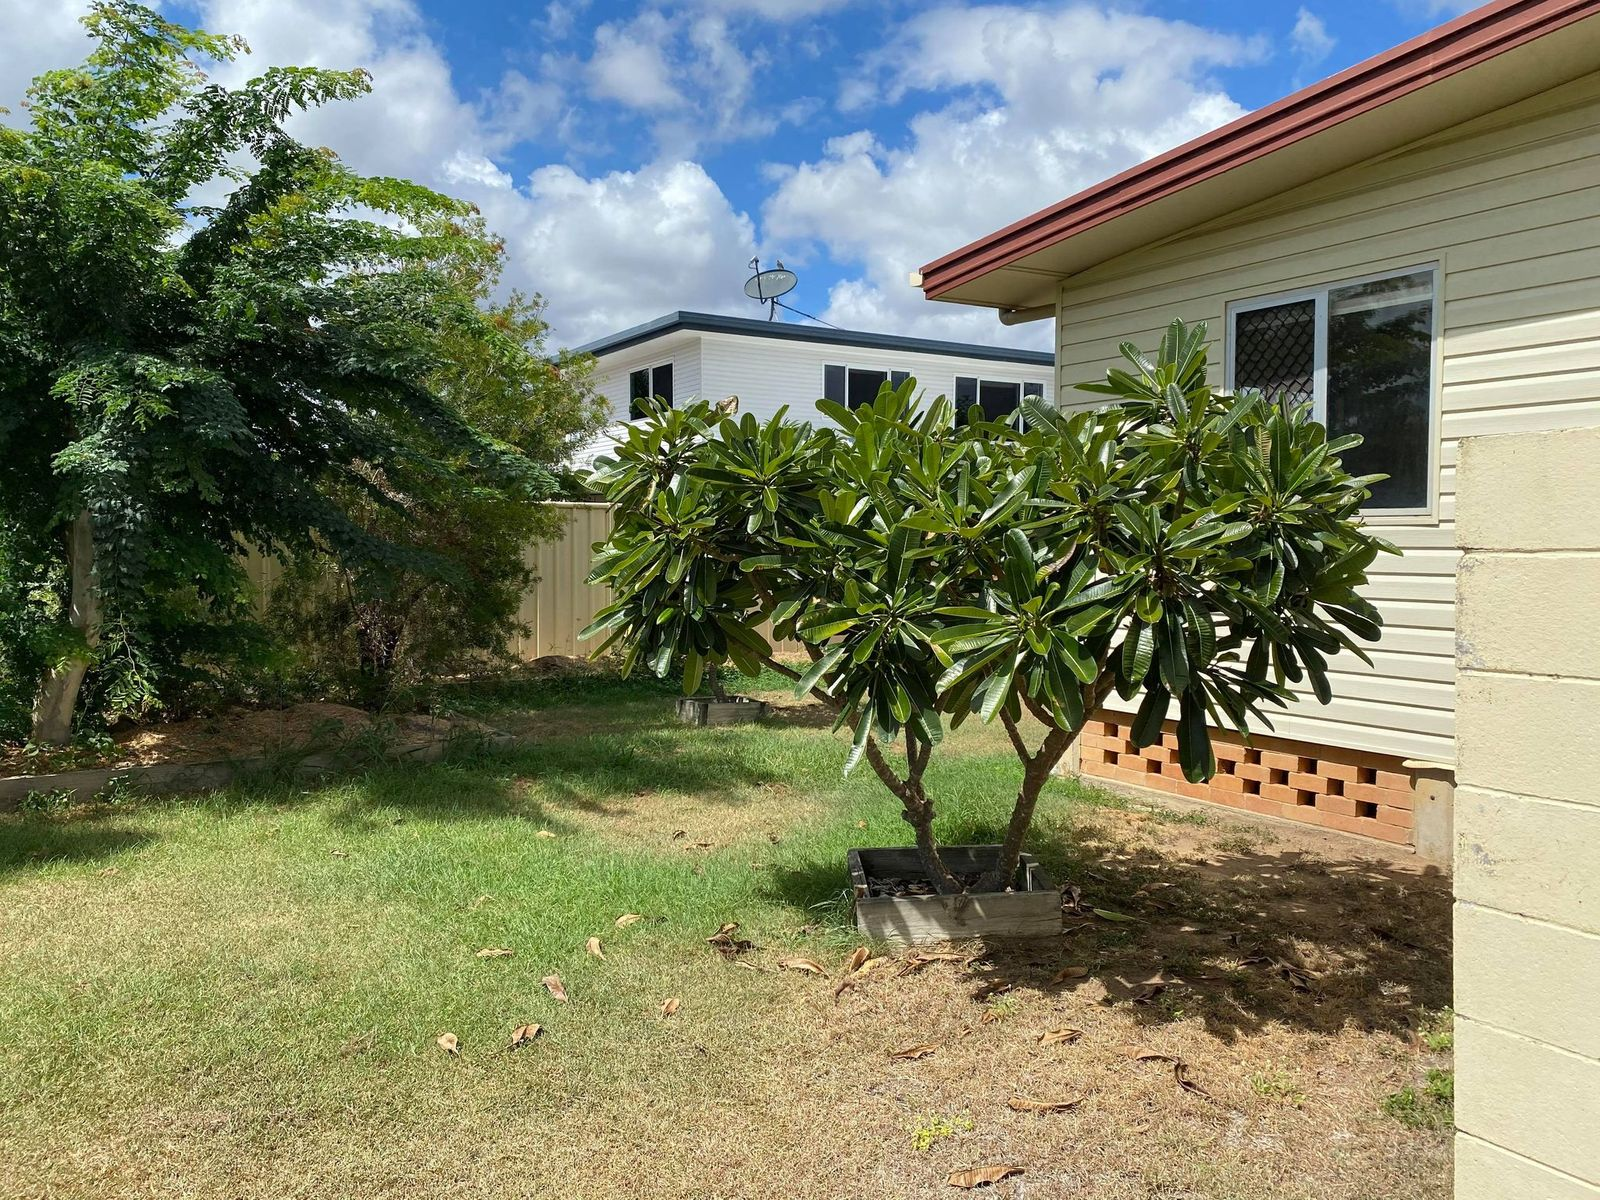 122 Menzies Street, Park Avenue, QLD 4701